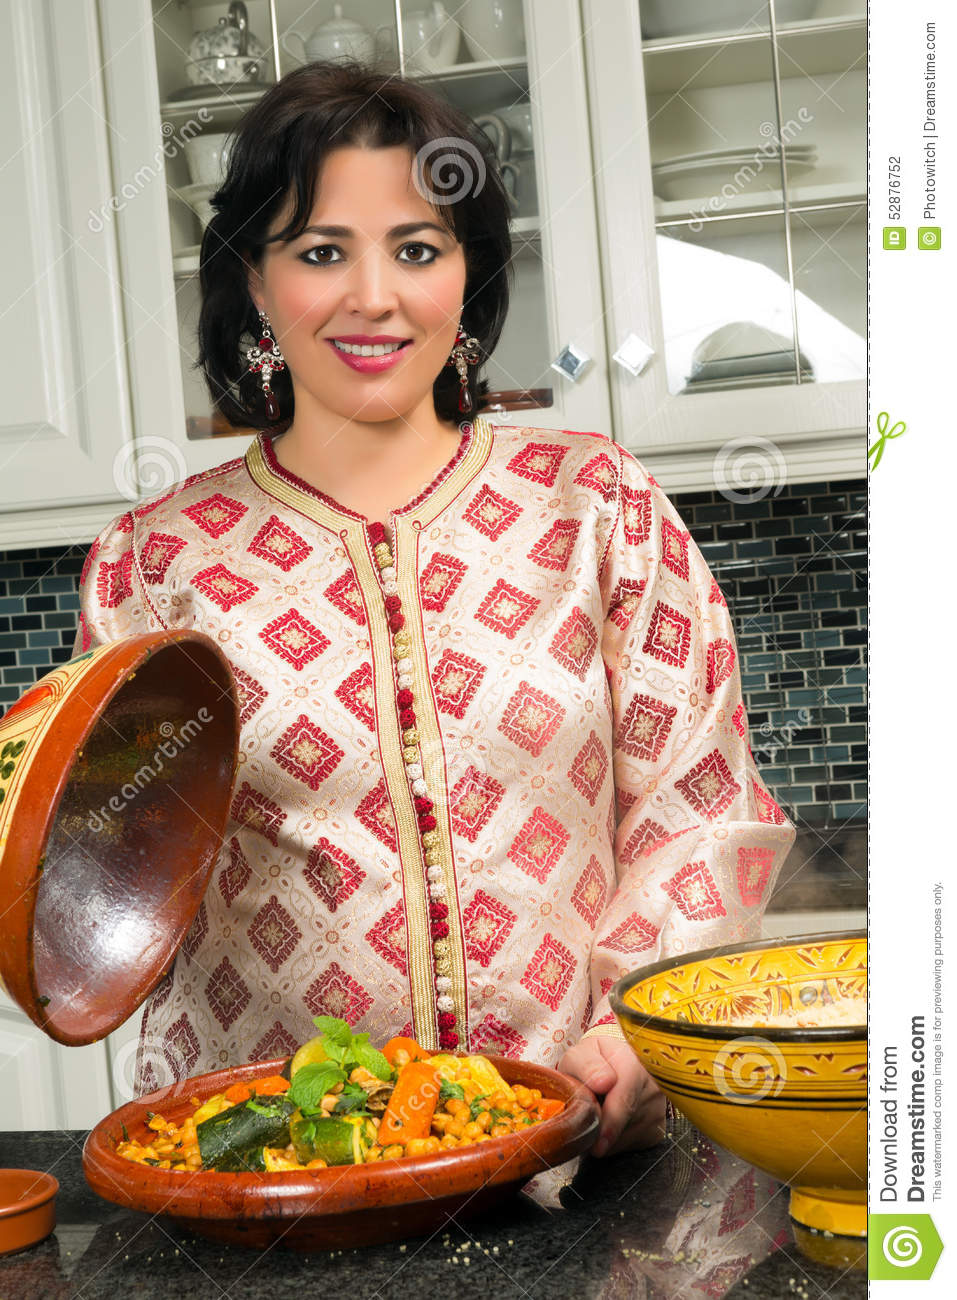 Islamic traditional food stock photo  Image of vegetables